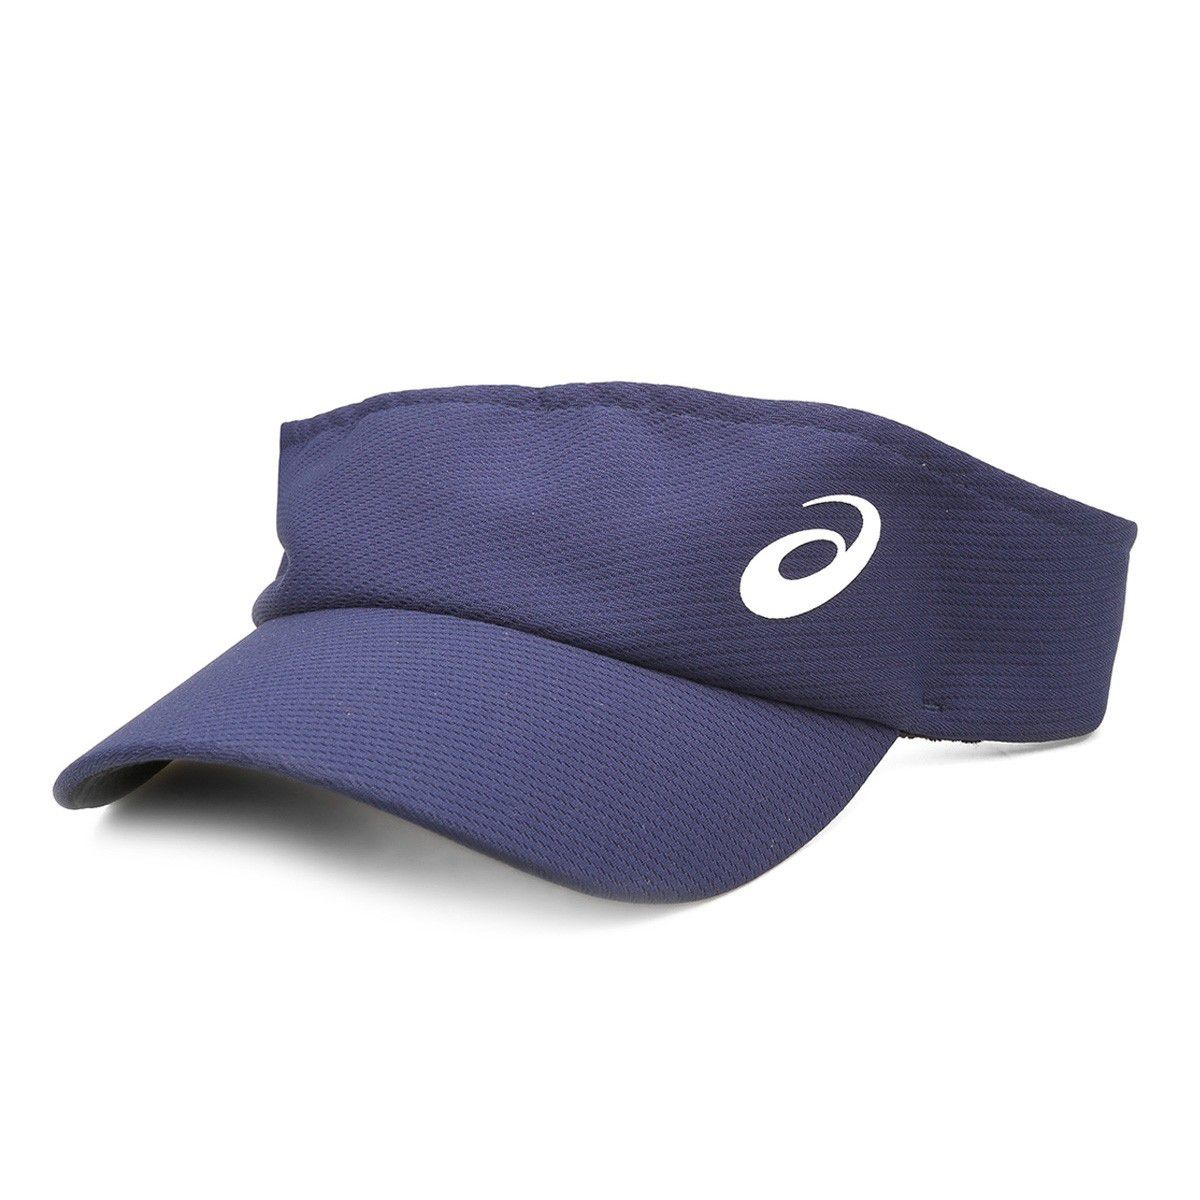 Asics Performance Visor Asics Blue